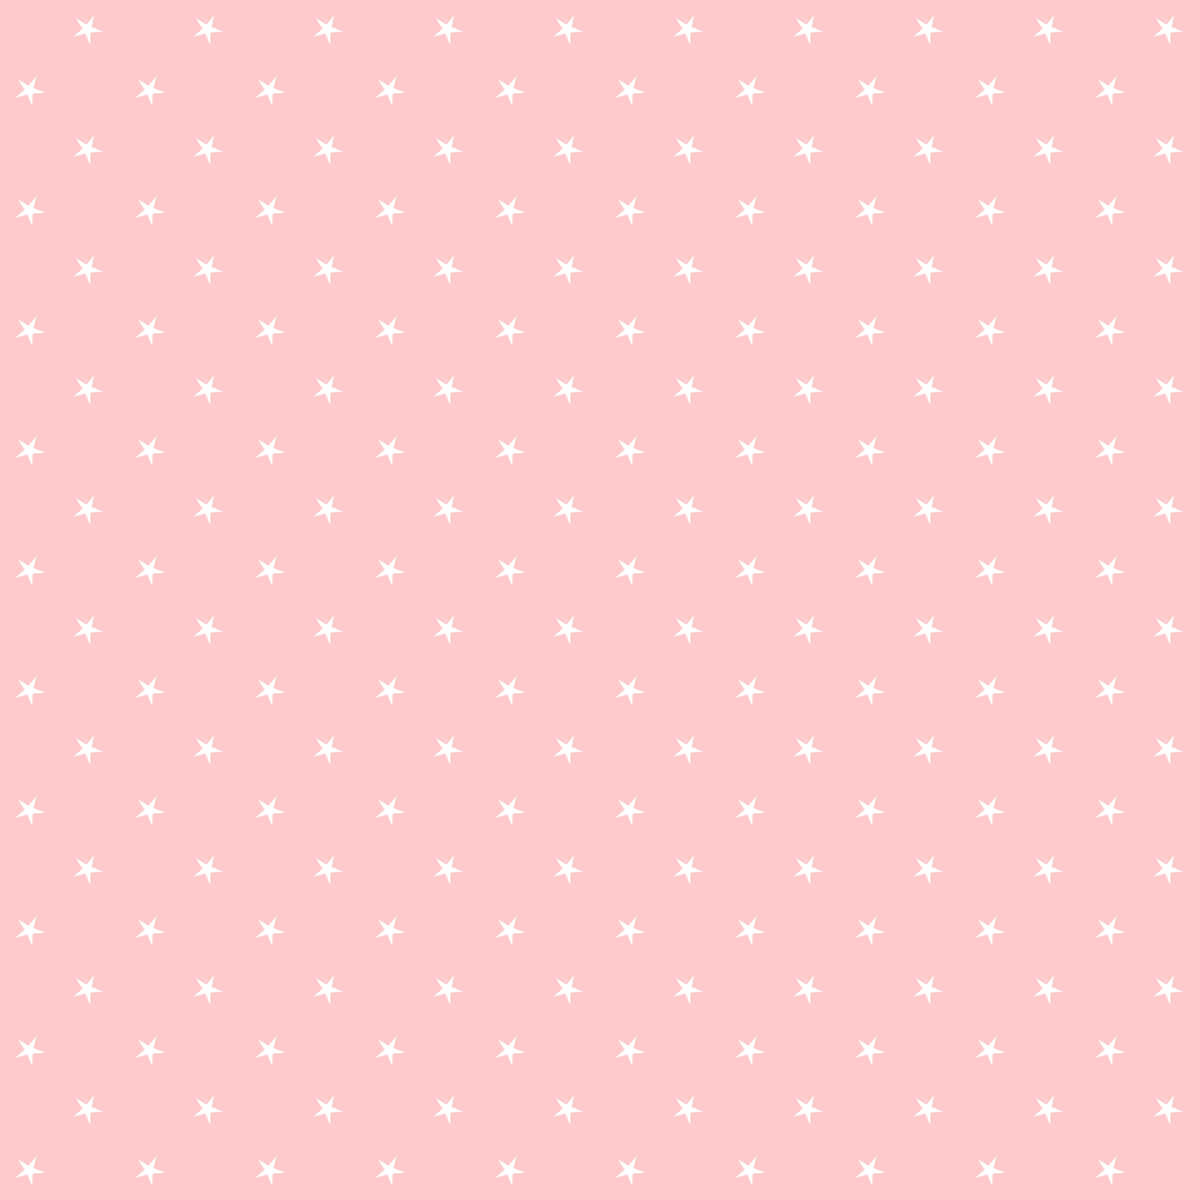 papier scrapbooking rose pale